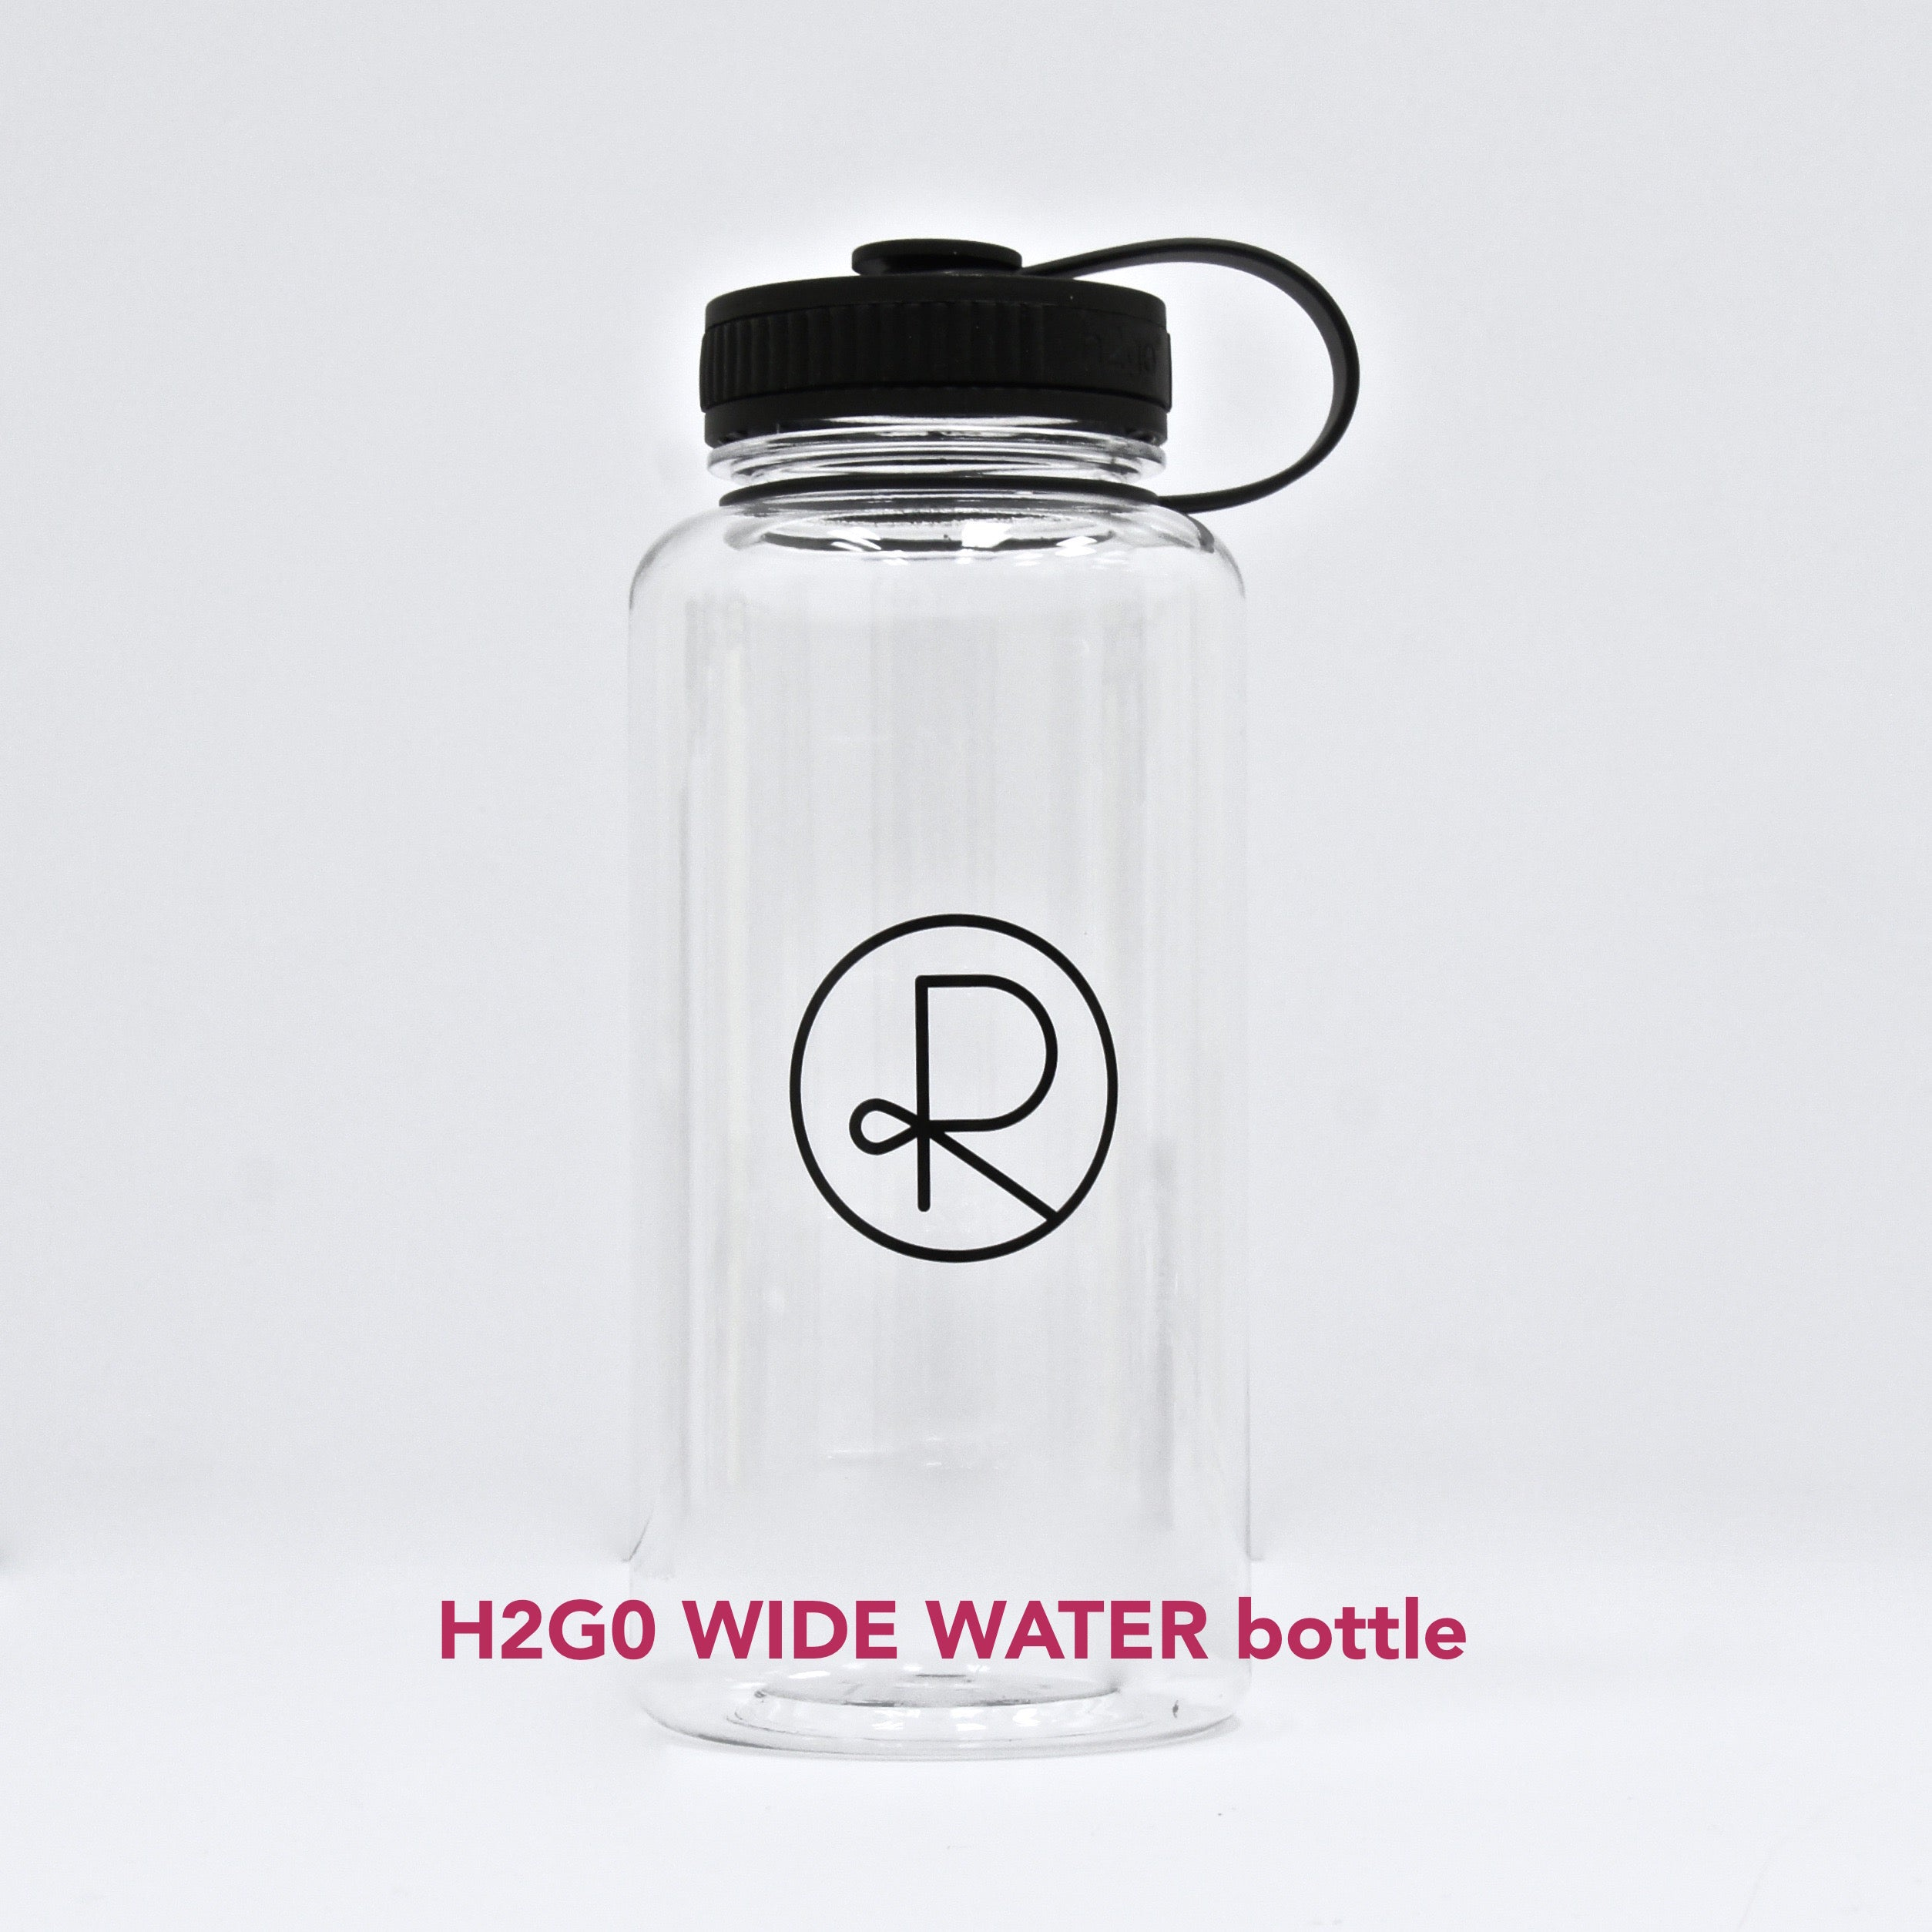 Reborn Coffee h2go Wide Water Bottle. 34 oz. Single Wall Tritan Copolyester Bottle with Threaded Lid. Patent Pending for Cold Beverage. color: CLEAR